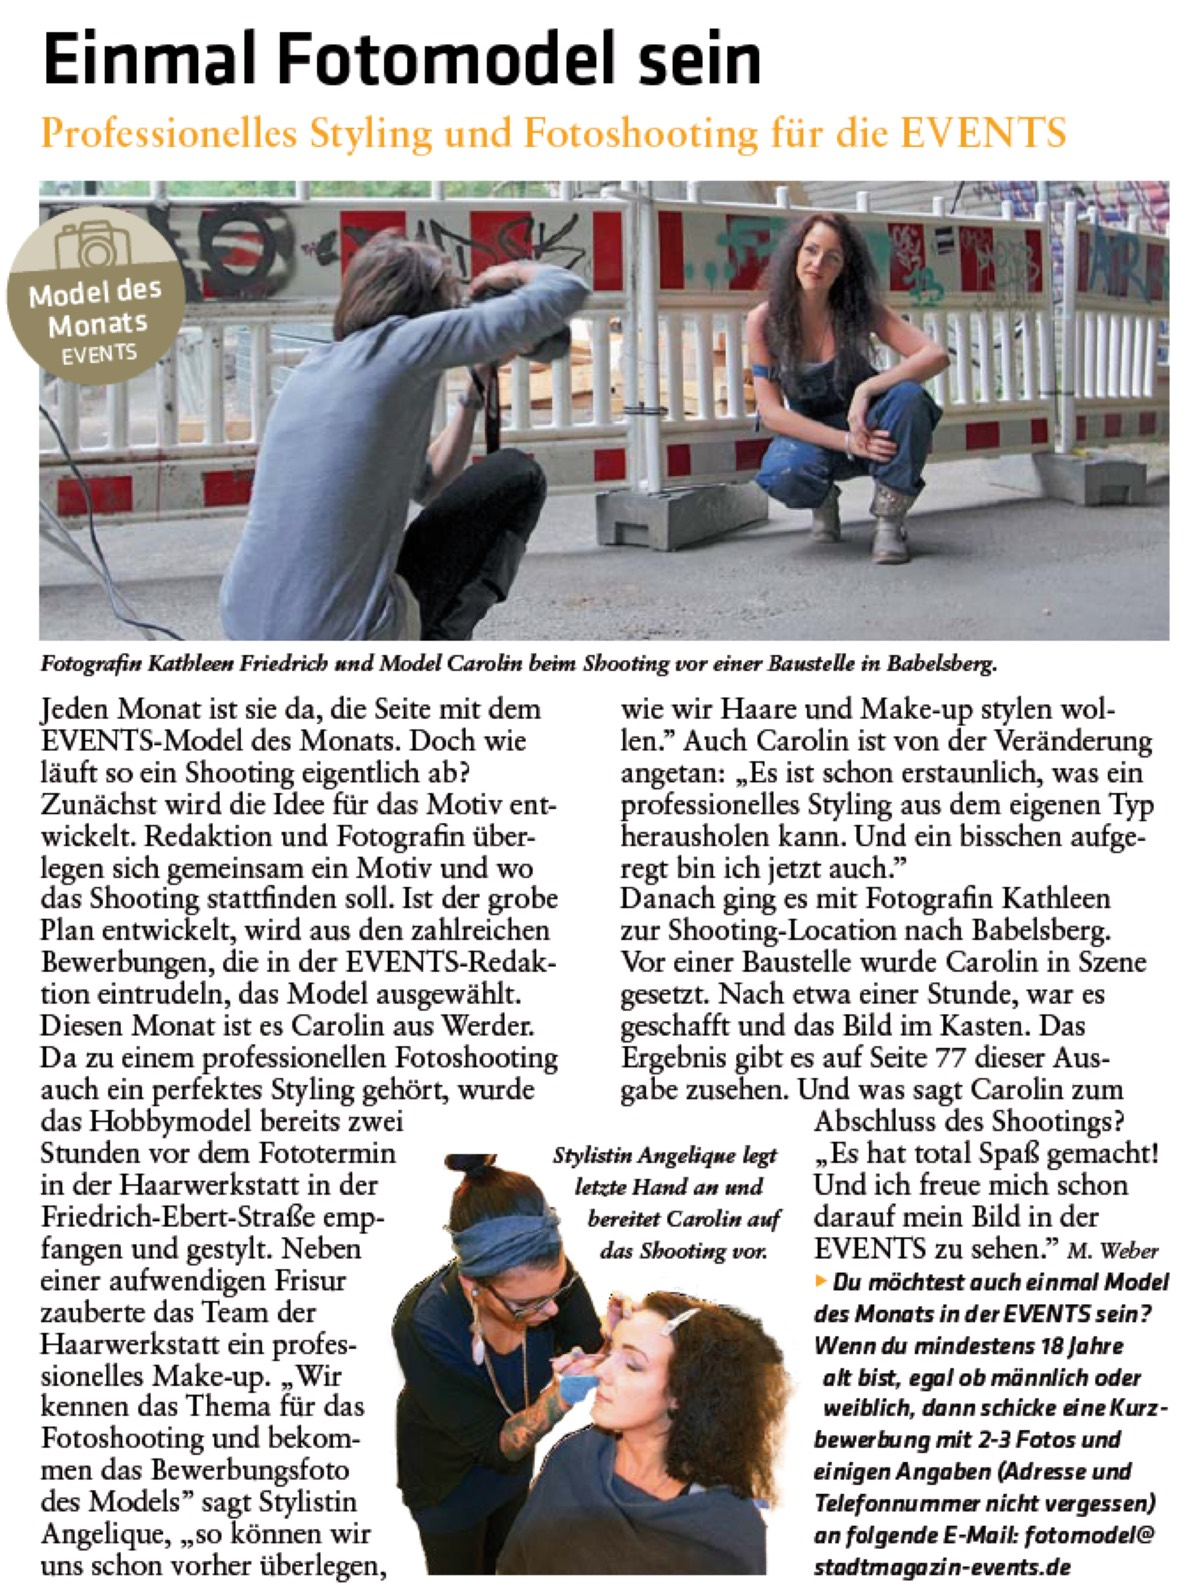 Presse - Stadtmagazin EVENTS